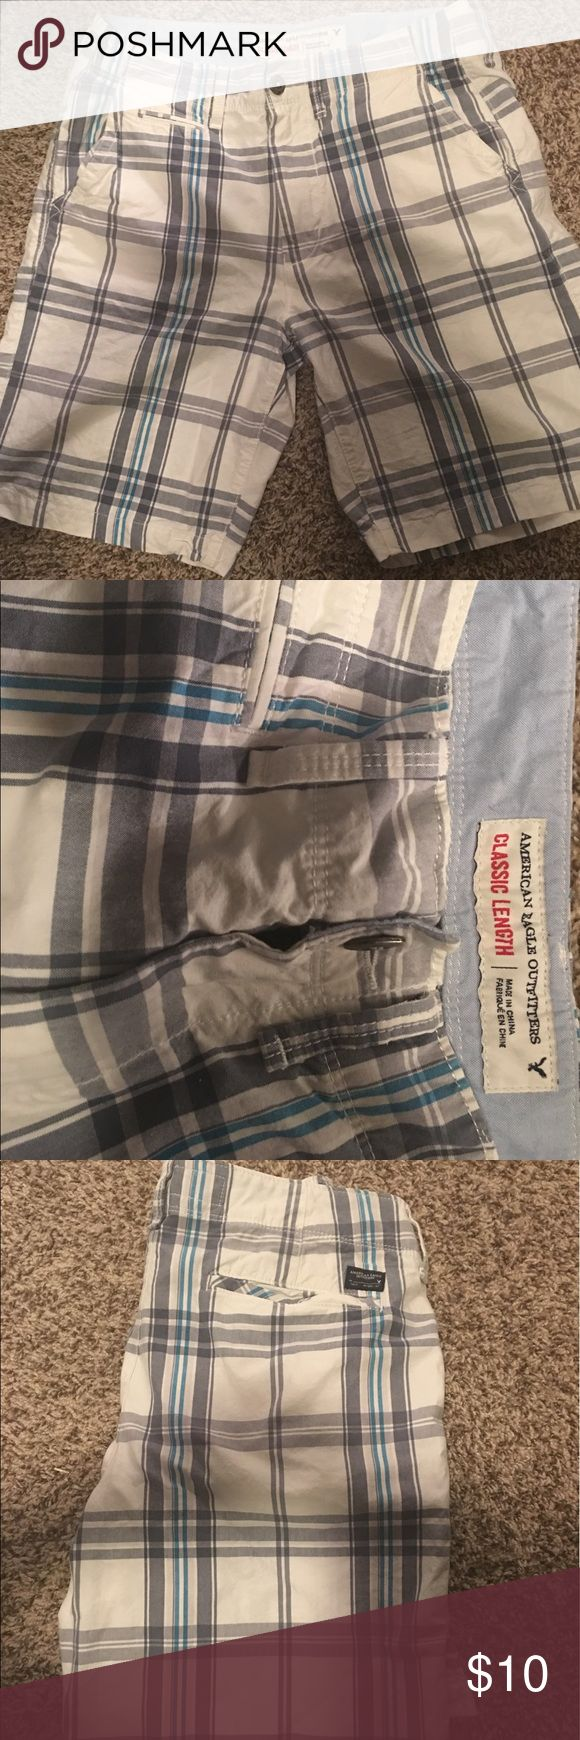 EUC! American Eagle Men's plaid shorts 33 waist From my personal collection bought and worn only a few times because they were too tight on me. They are in excellent condition. American Eagle Outfitters Shorts Flat Front